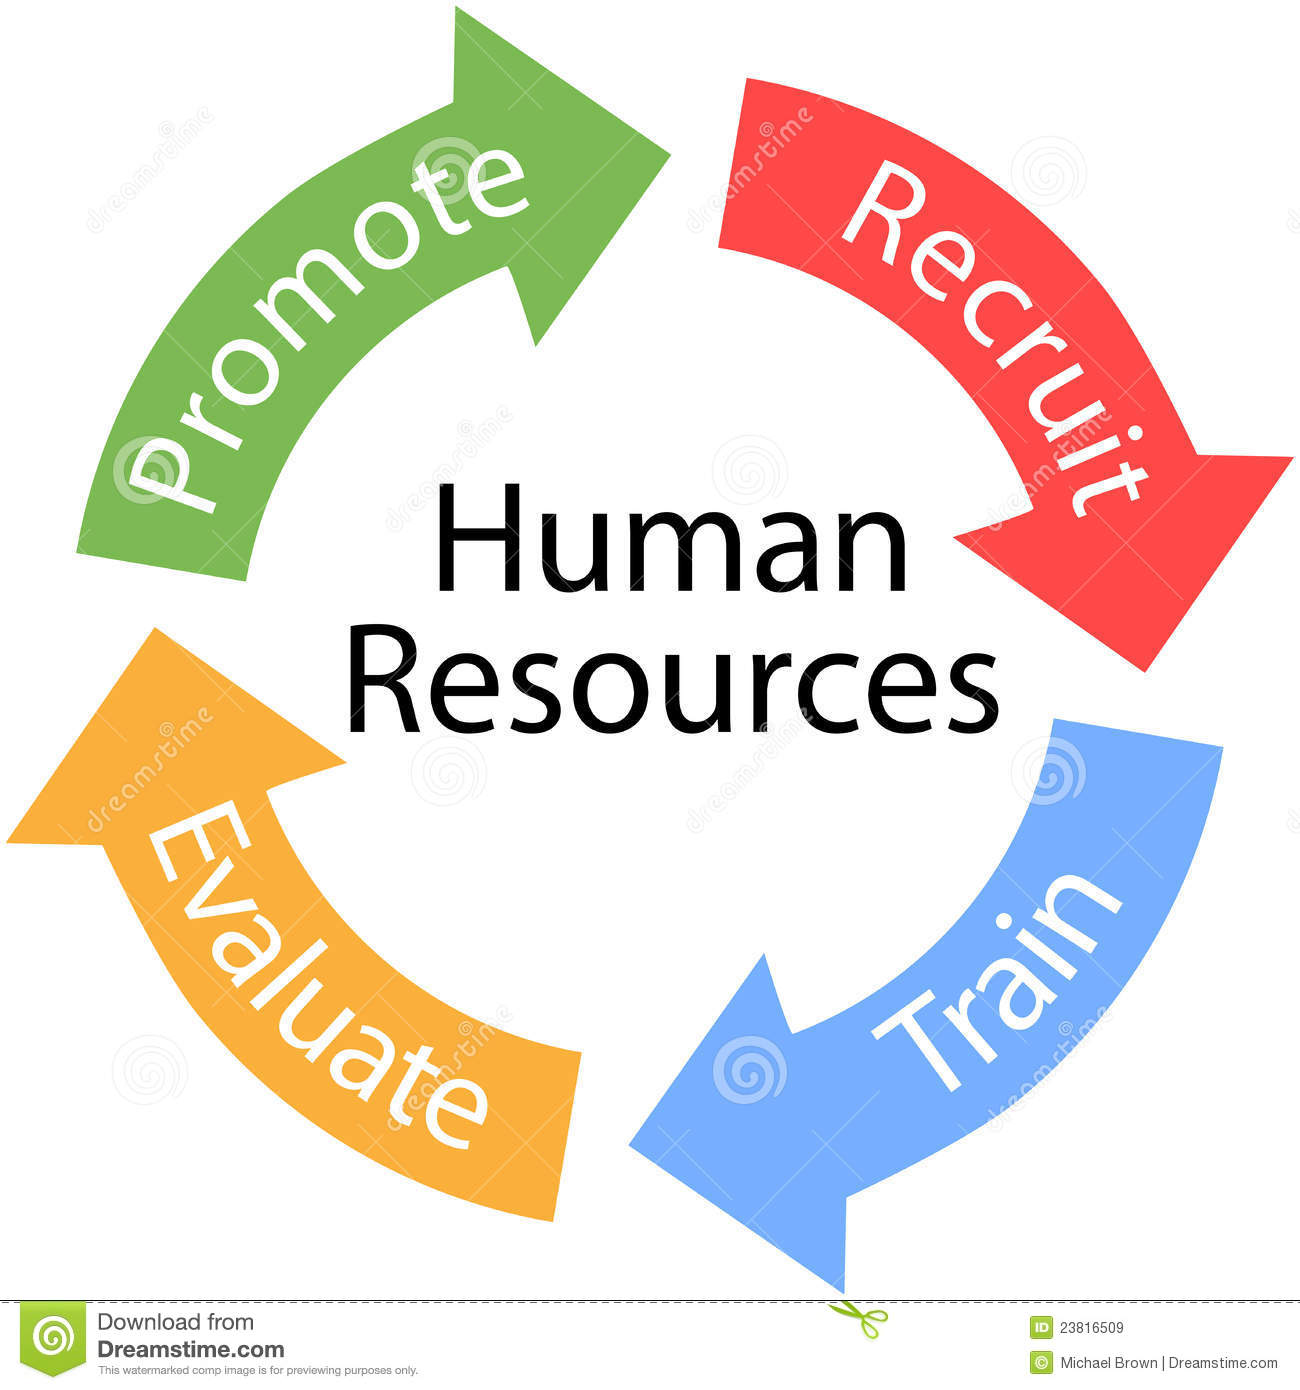 Human Resources: Human Resources Arrows Recruit Train Cycle Cartoon Vector